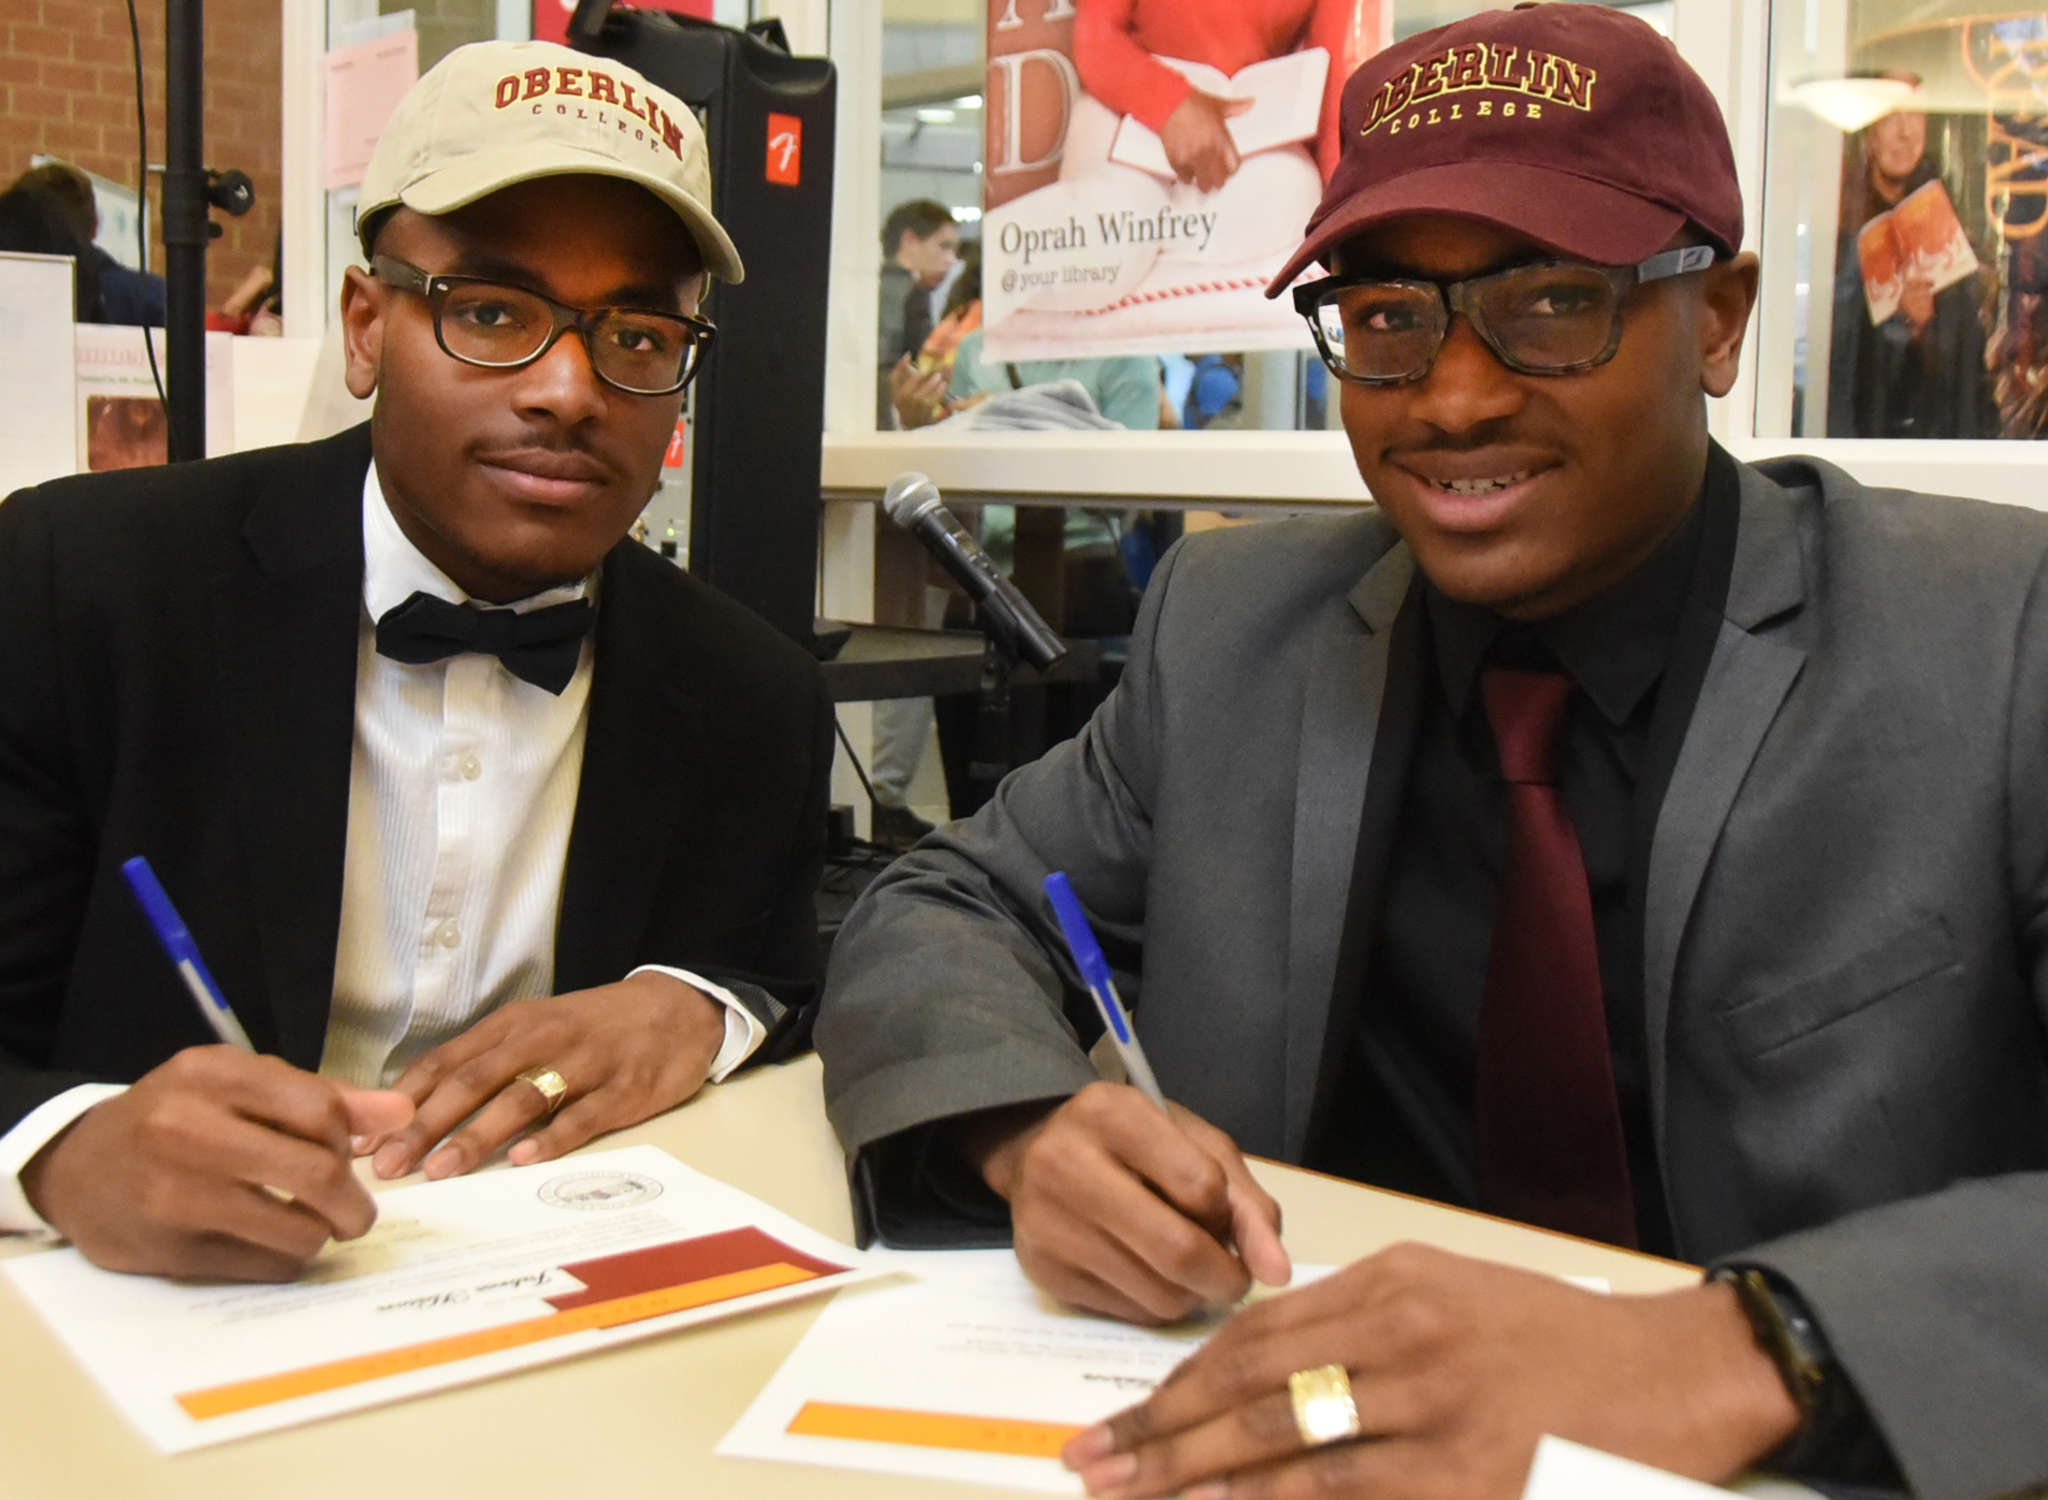 Timber Creek´s Jabree (left) and Jubreel Hason are headed to Oberlin. The twins are athletic and academic stars, driven by strong family ties. CURT HUDSON / For The Inquirer